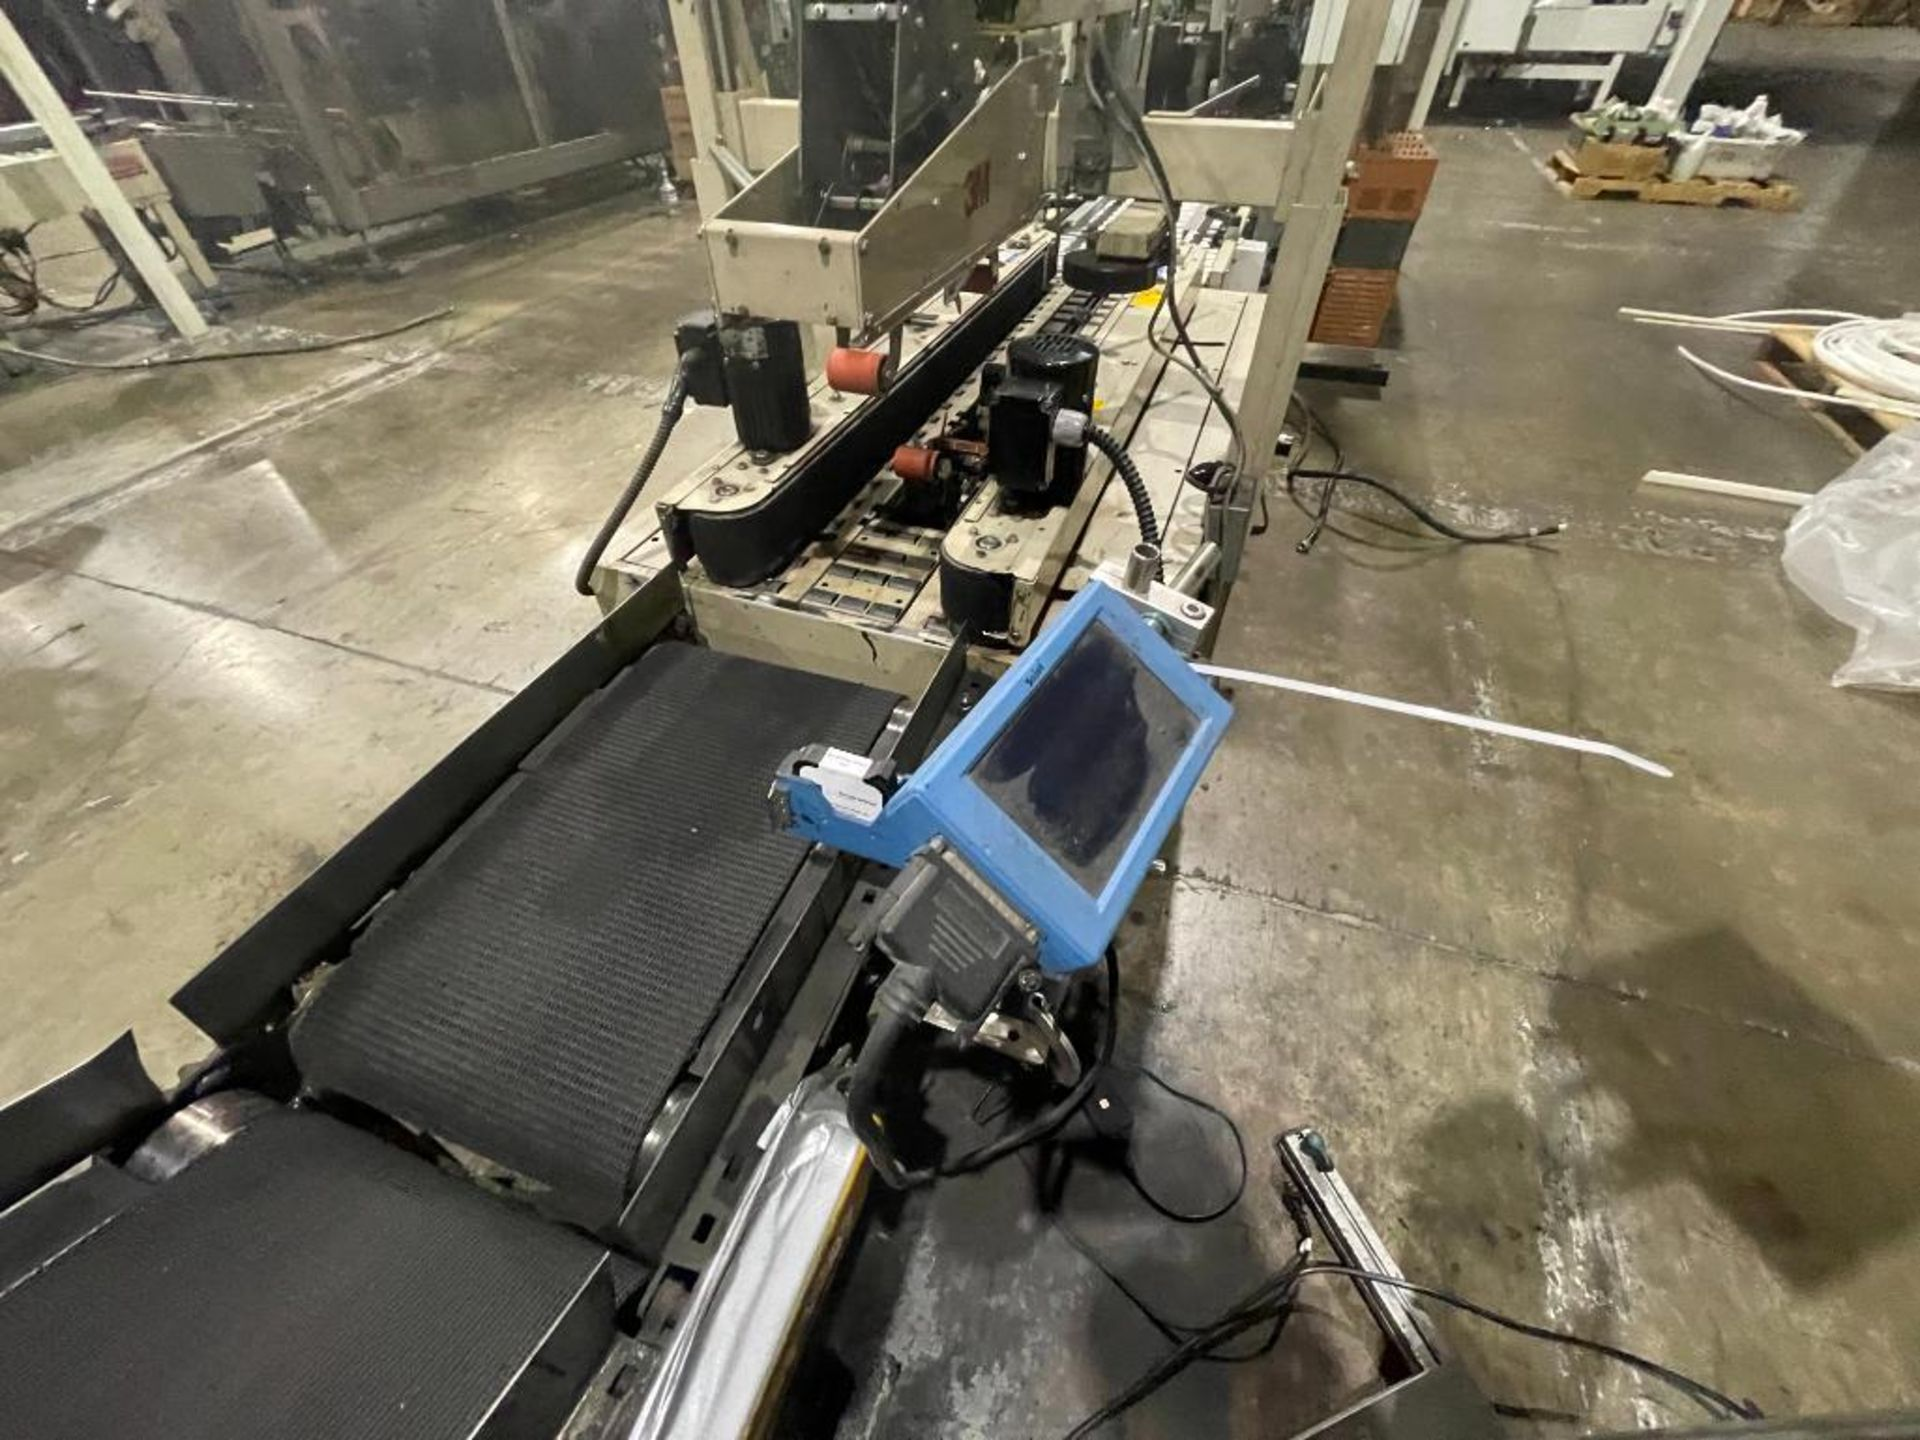 Automatic Printing Systems case coder - Image 11 of 15